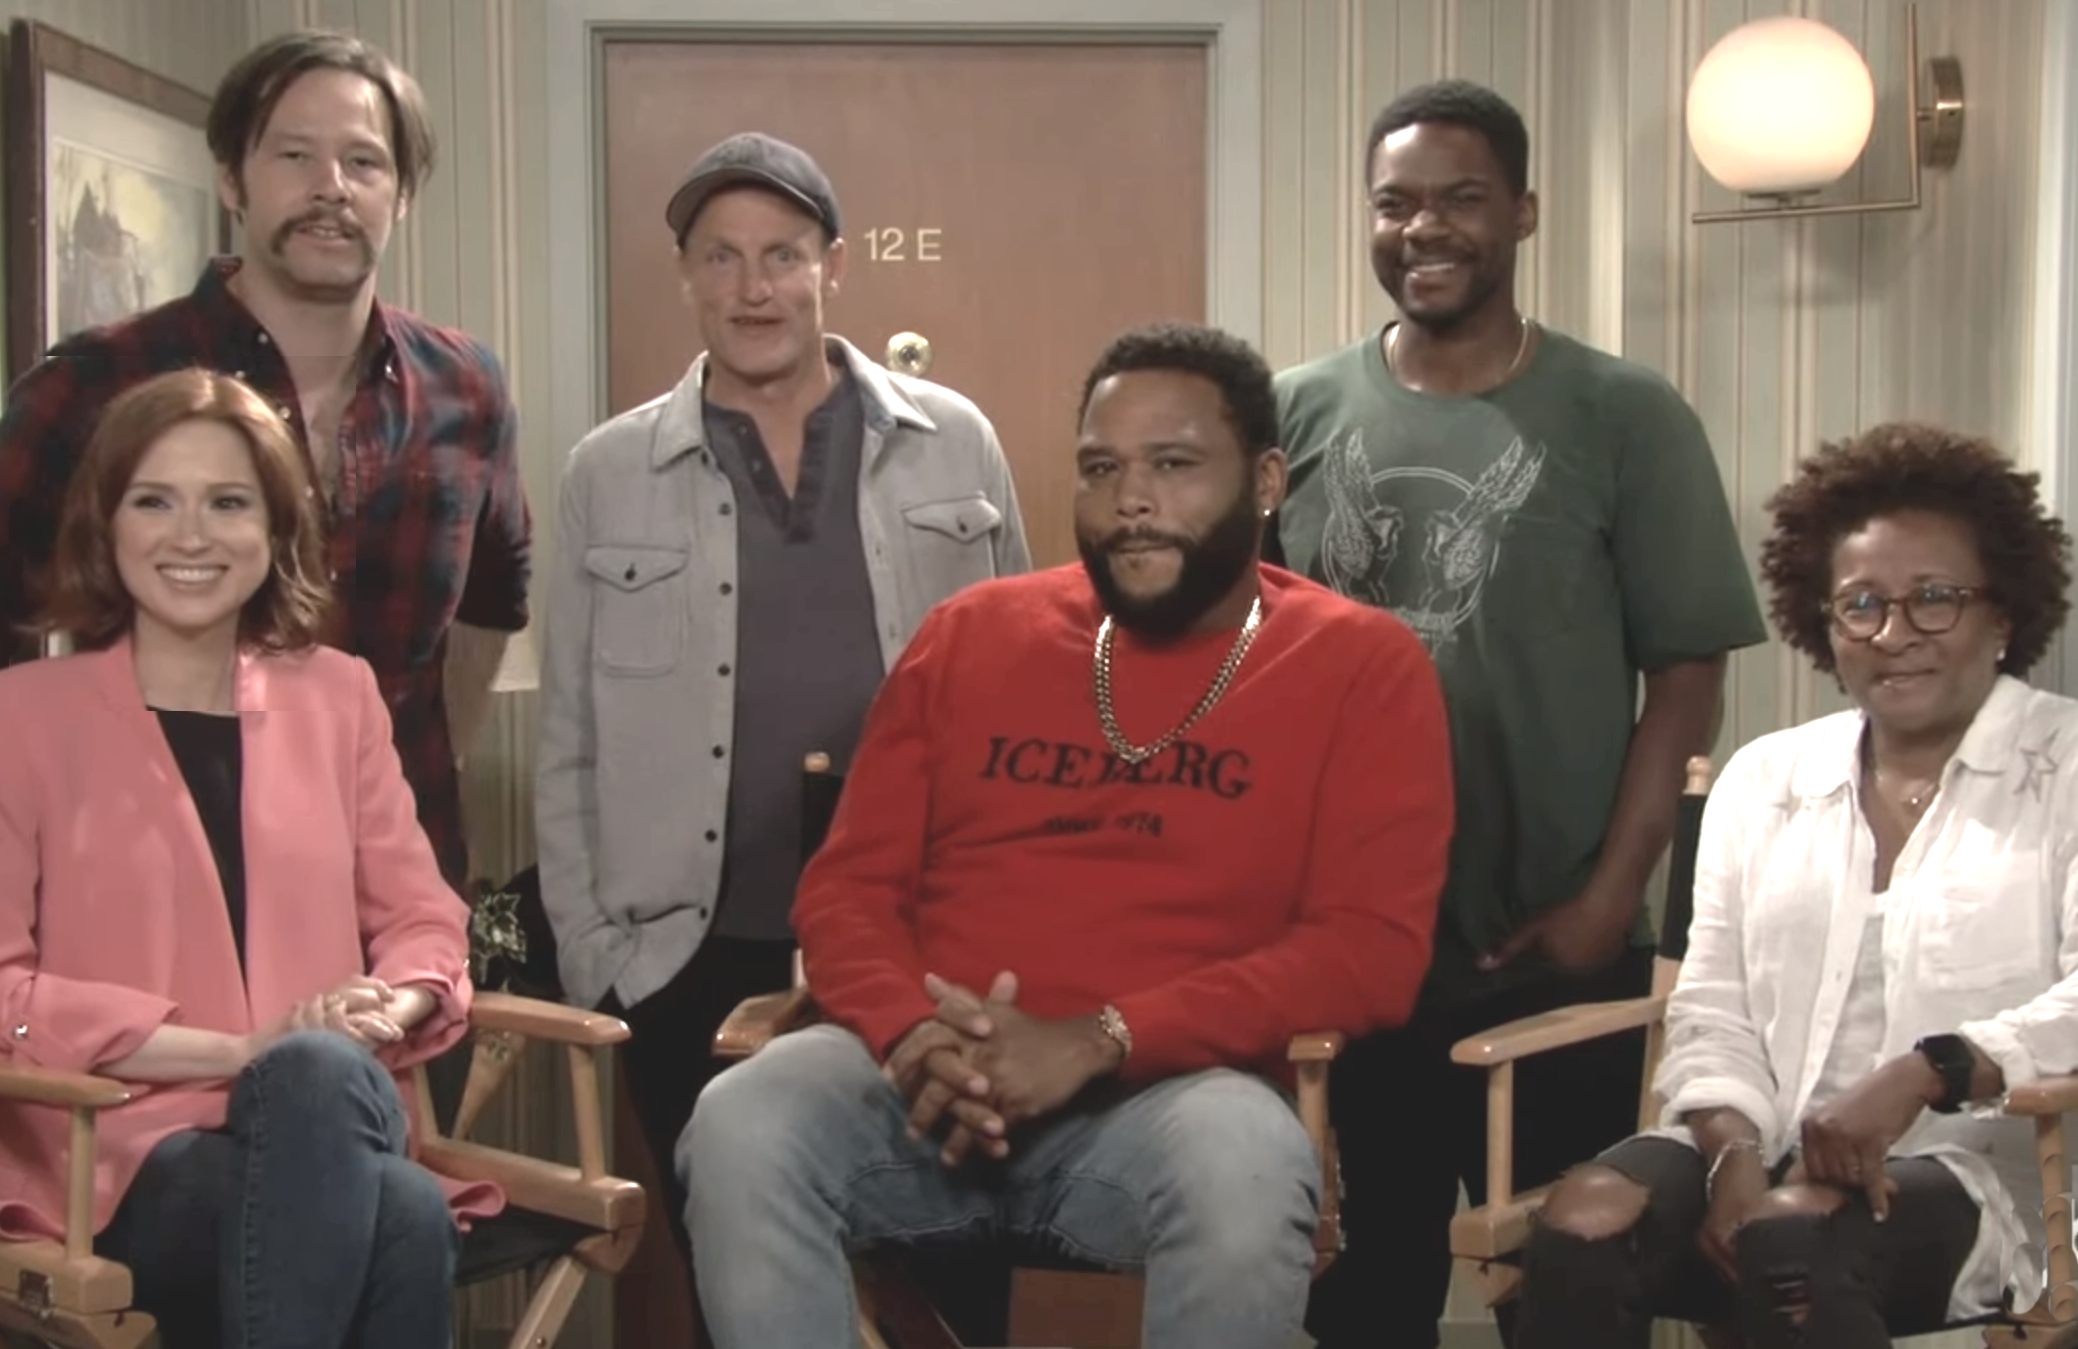 Ellie Kemper, Ike Barinholtz, Woody Harrelson, Anthony Anderson, Jovan Adepo and Wanda Sykes are among the stars appearing in tonight's Live in Front of a Studio Audience: Norman Lear's All in the Family and The Jeffersons (ABC)